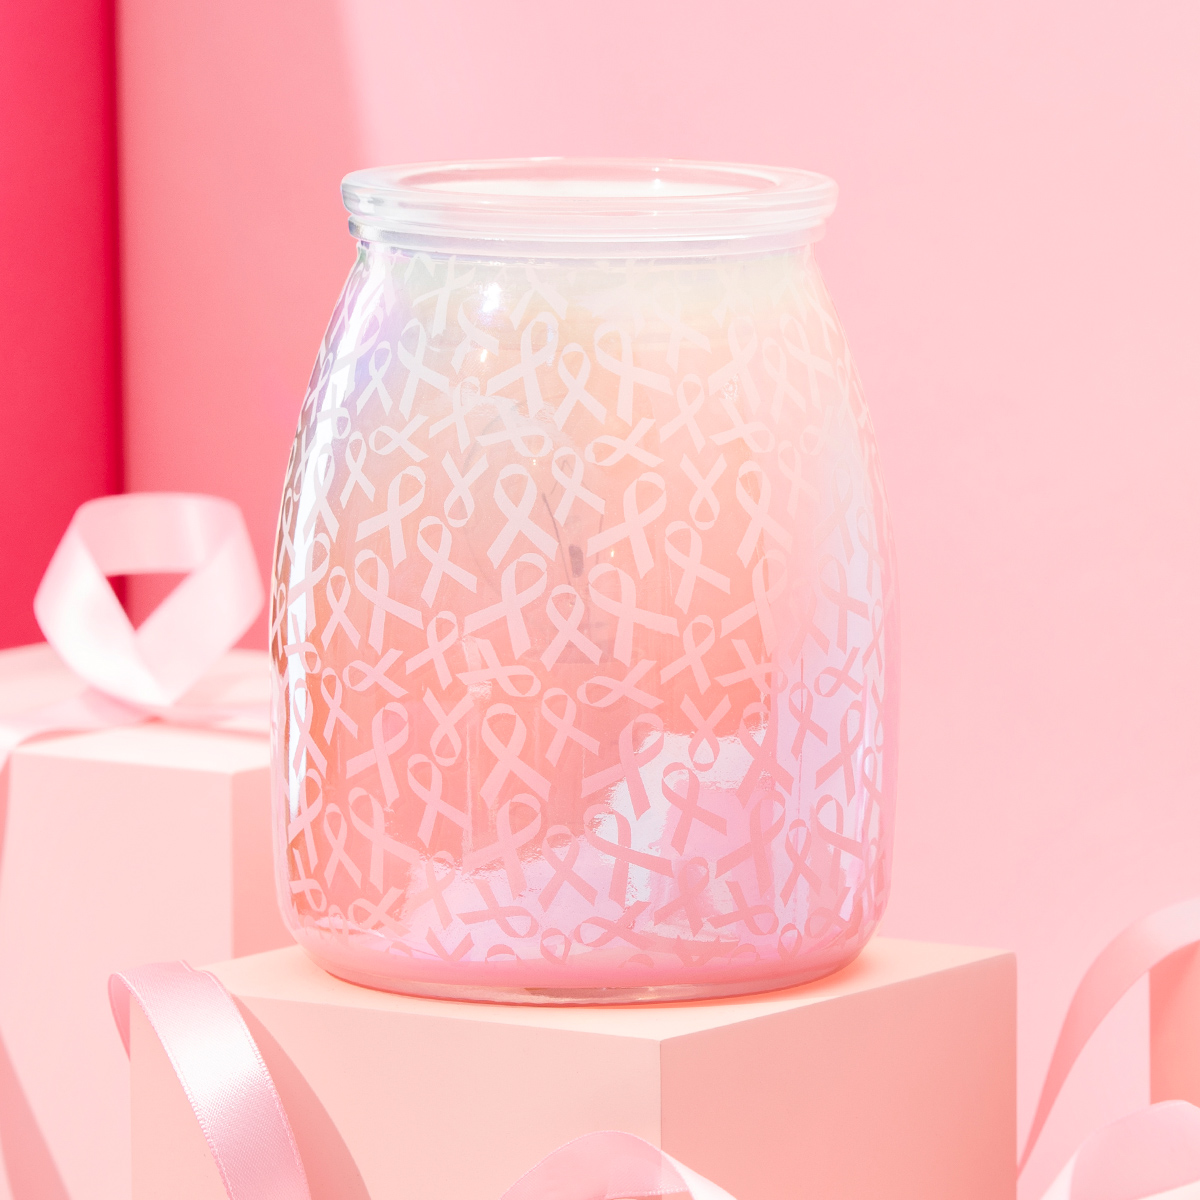 Scentsy Breast Cancer Warmer - Hope, Strength & Love